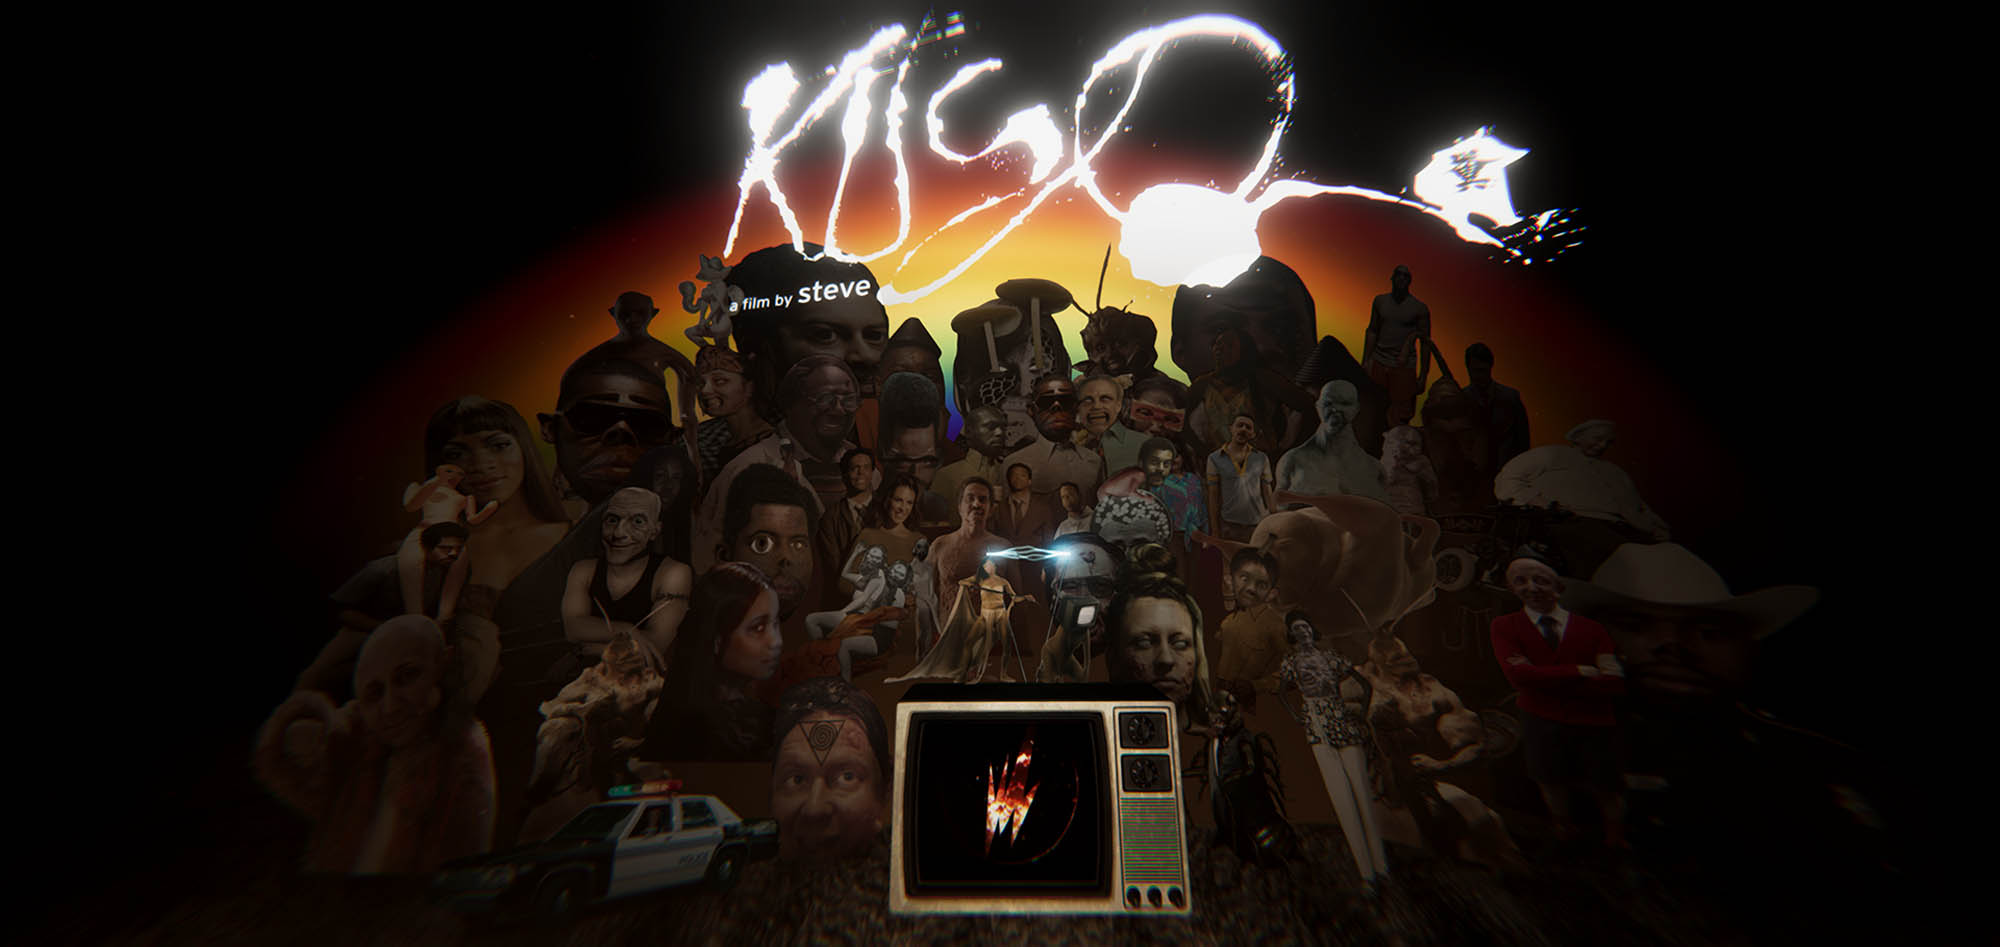 Kuso Launch